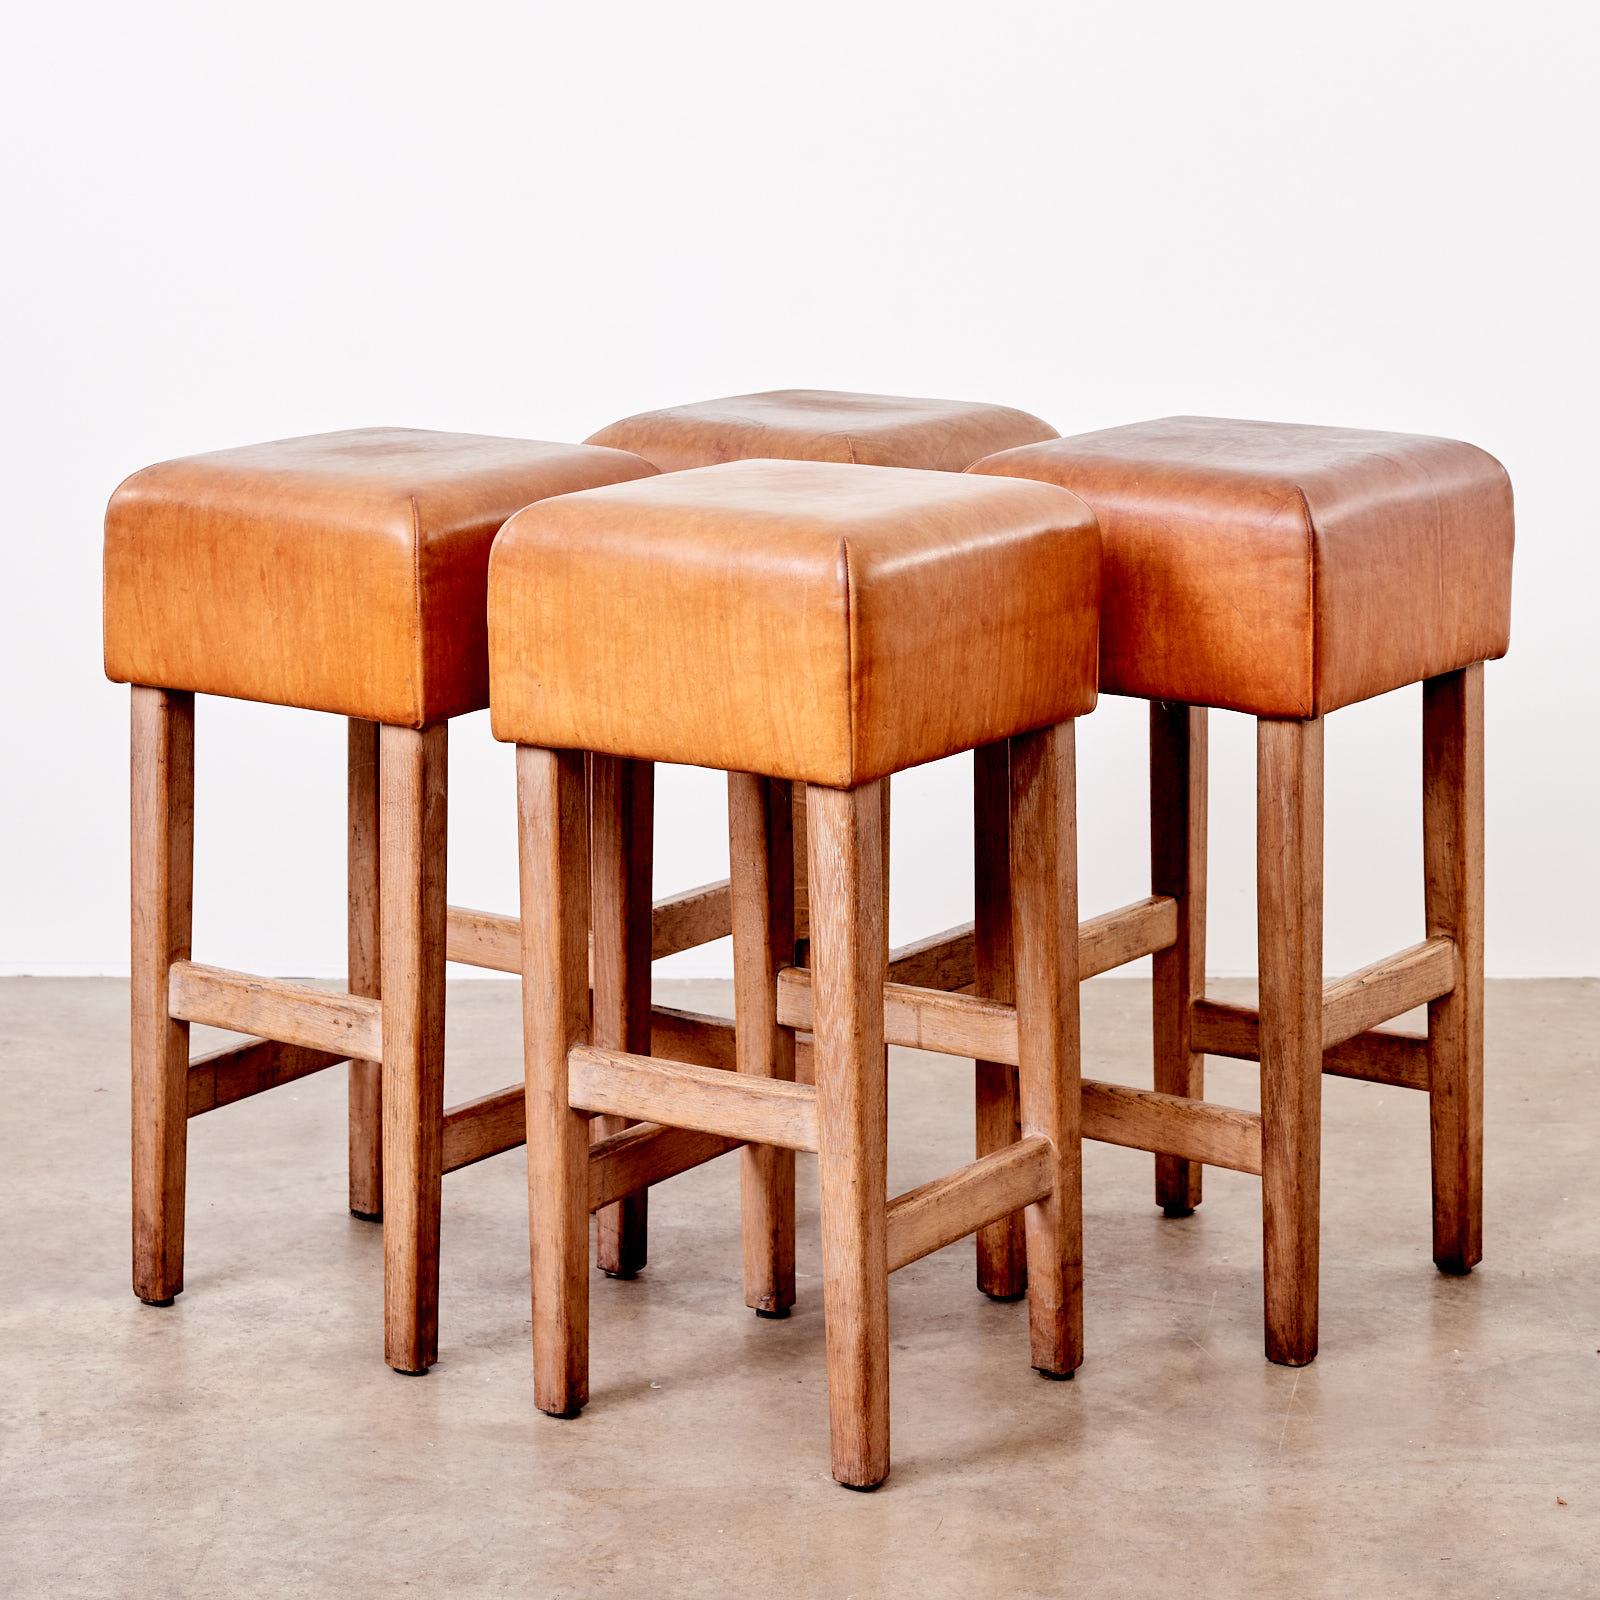 Contemporary Oak And Tan Leather Bar Stool Lassco England S Prime Resource For Architectural Antiques Salvage Curiosities